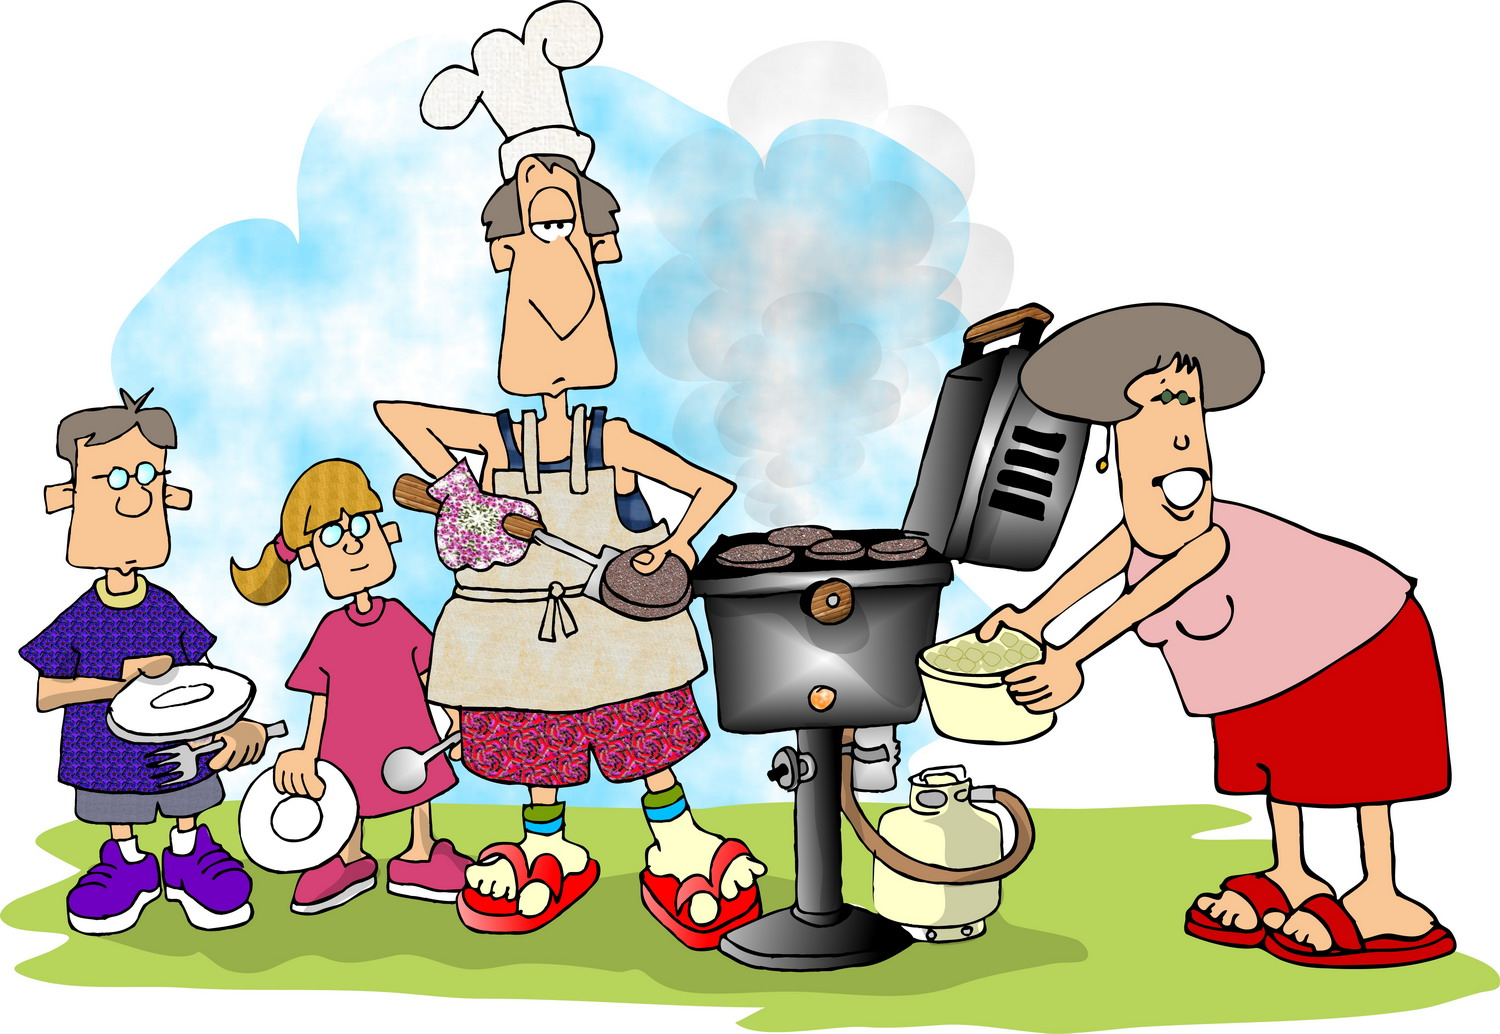 Barbecue clipart family gathering Picnic WOW the recipes barbeque